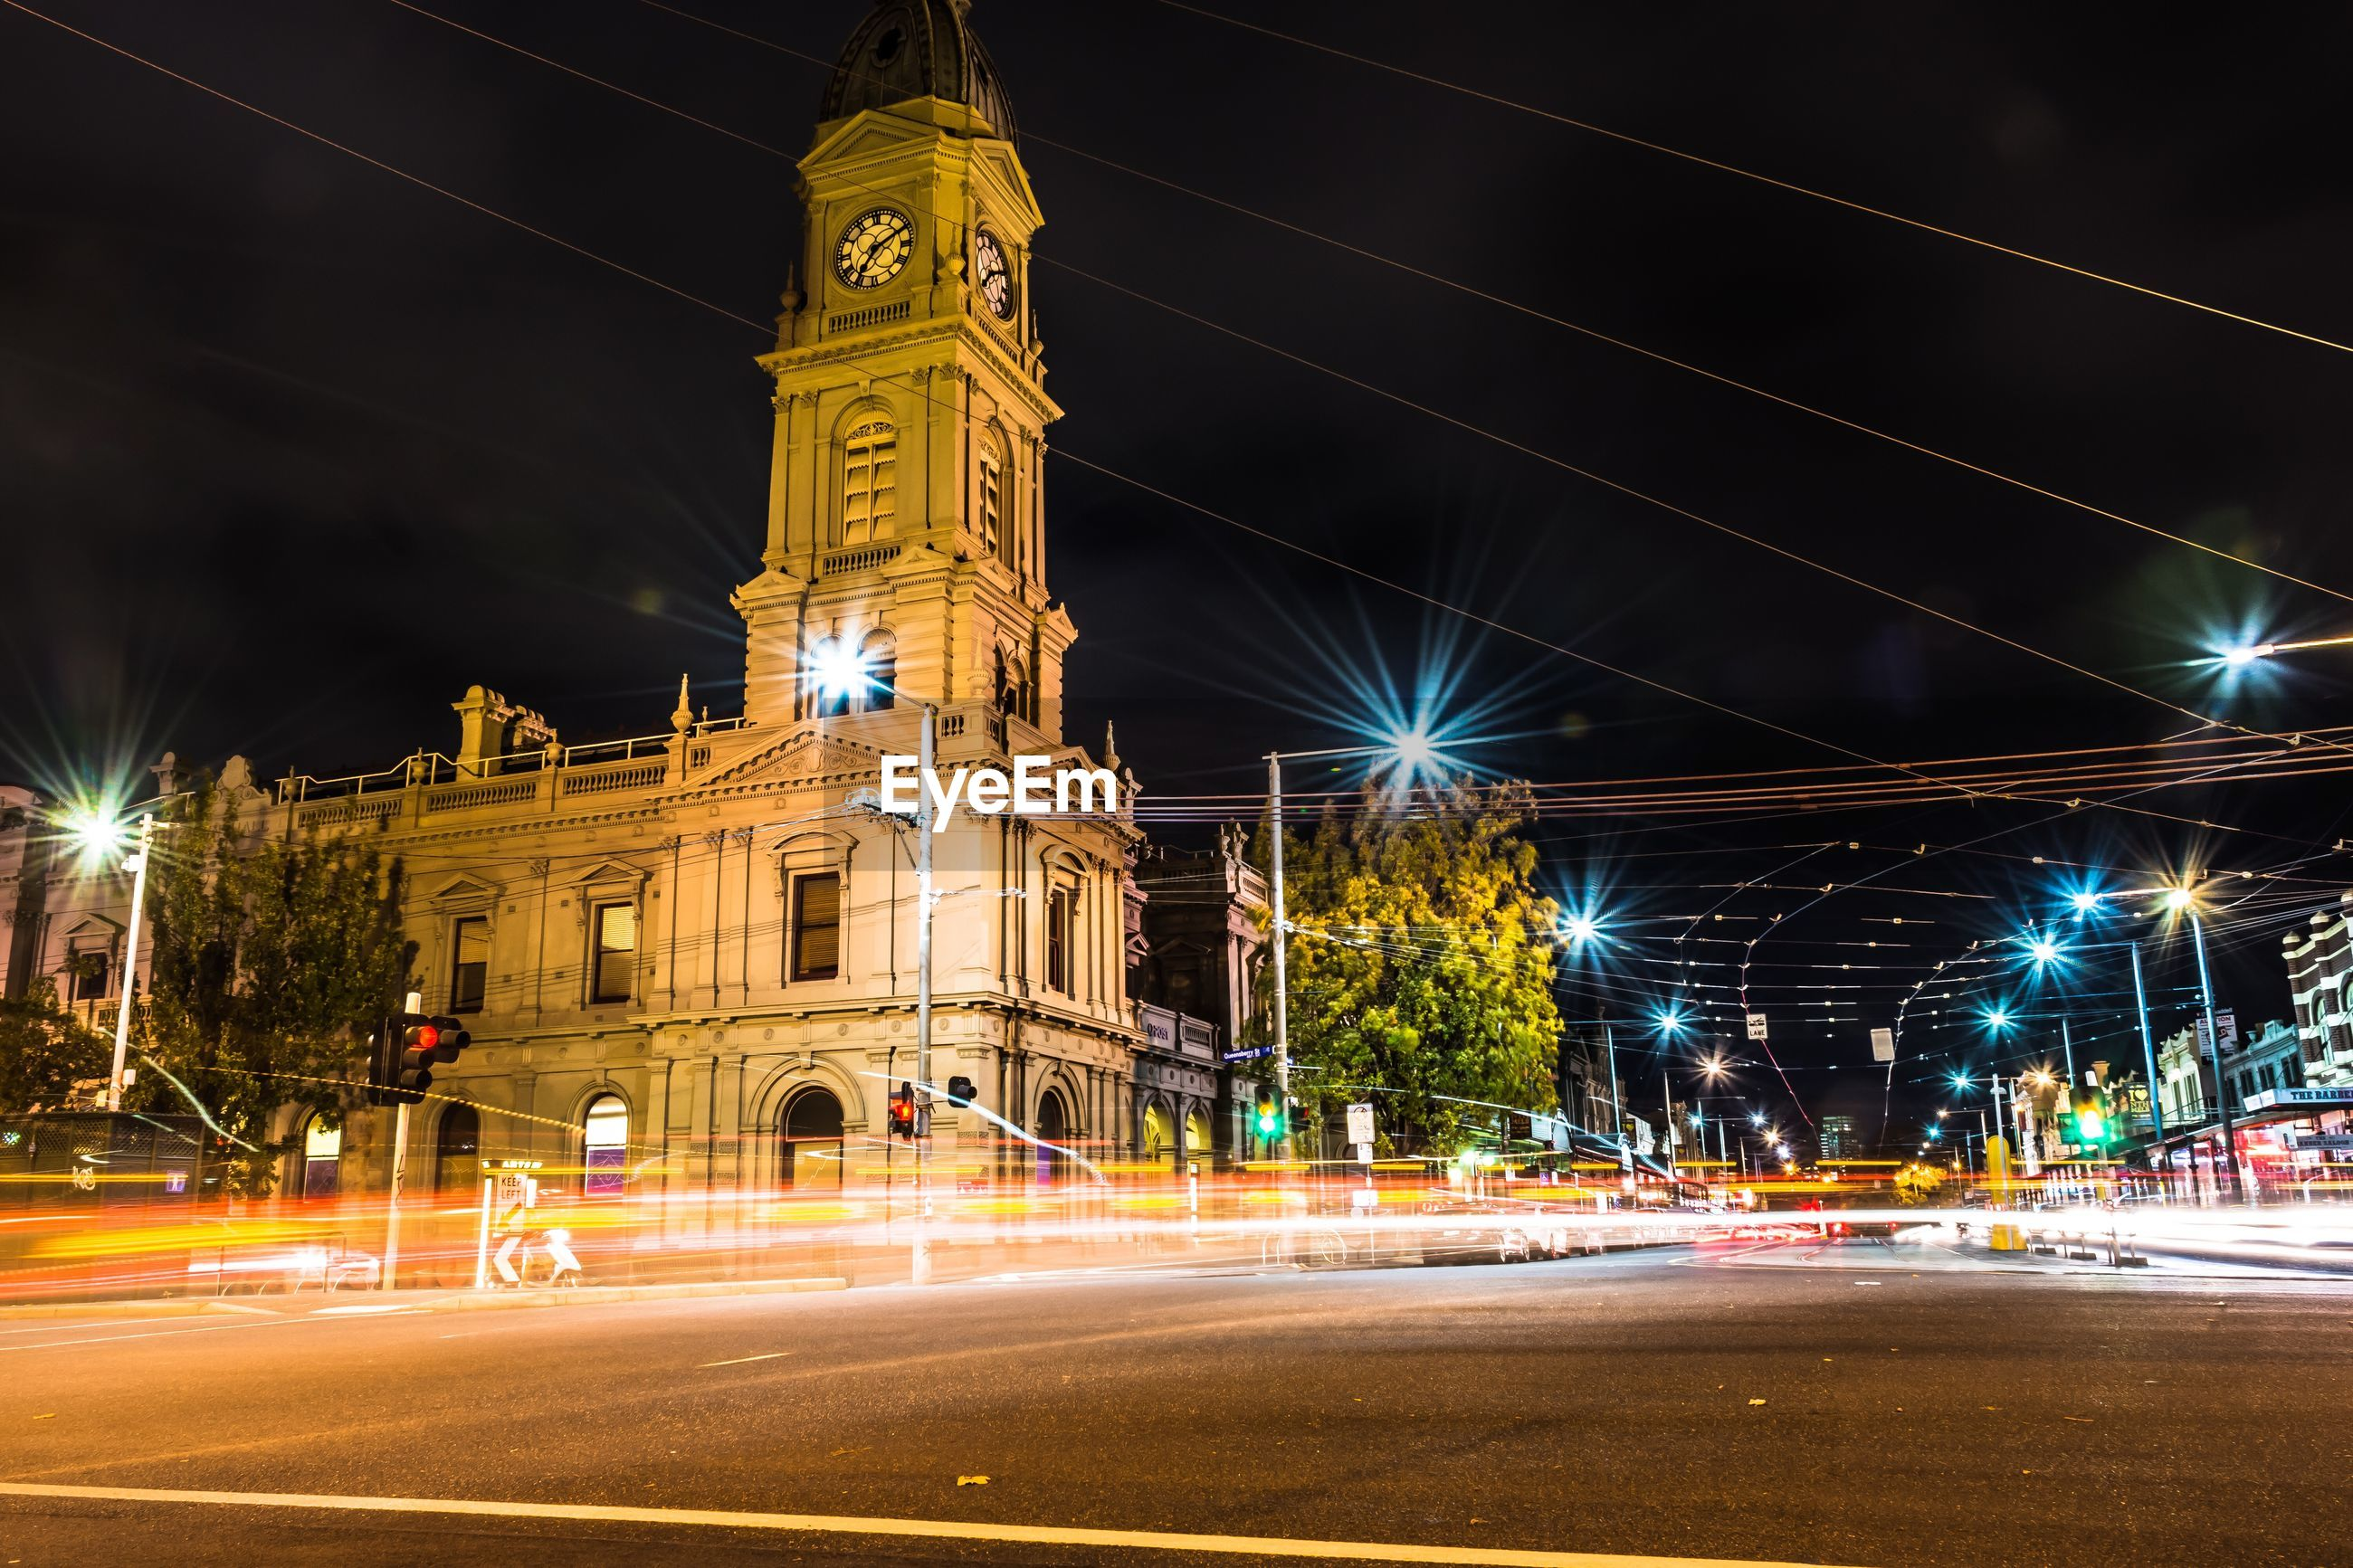 Light trails on city street at night